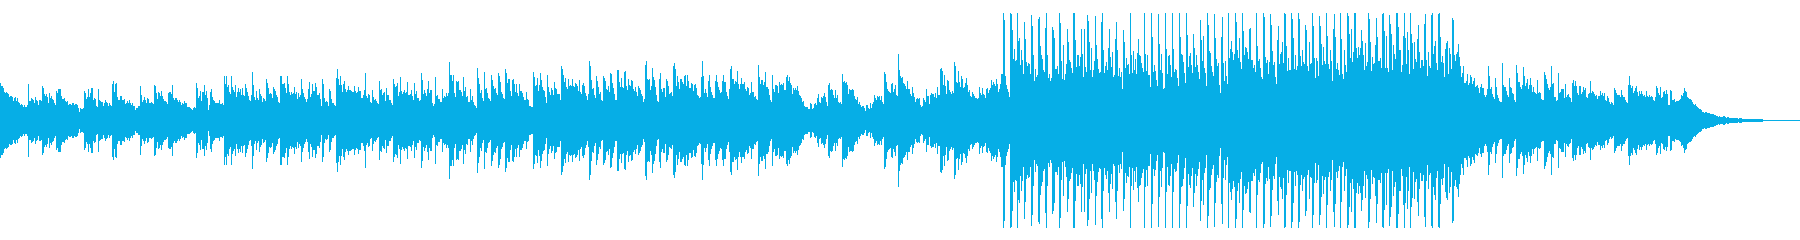 VP of IT technology company's reproduced waveform